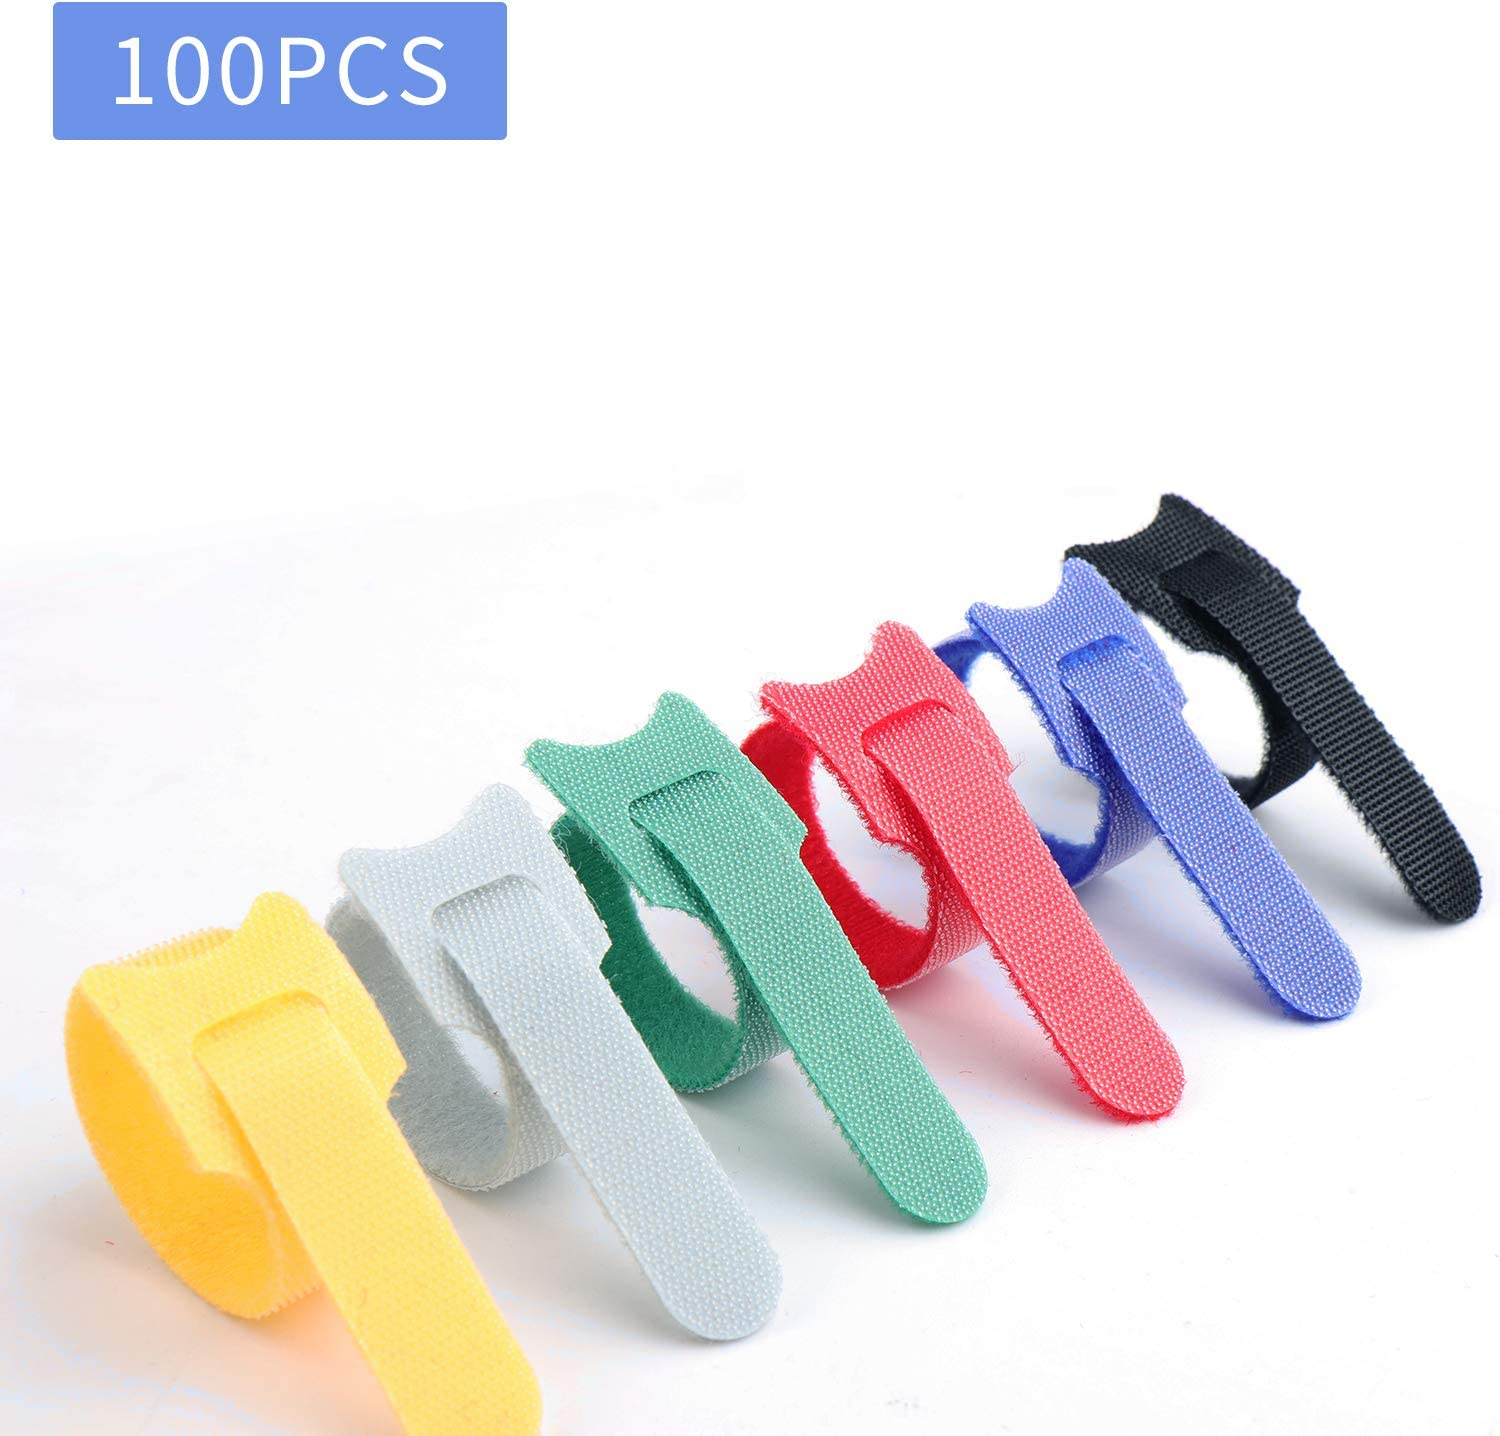 Pack of 100 Reusable Cord Ties Fastening Cable Ties Straps for Earbud Headphones Phones Wire Wrap Management,Hook and Loop Cord Ties L, Mixed